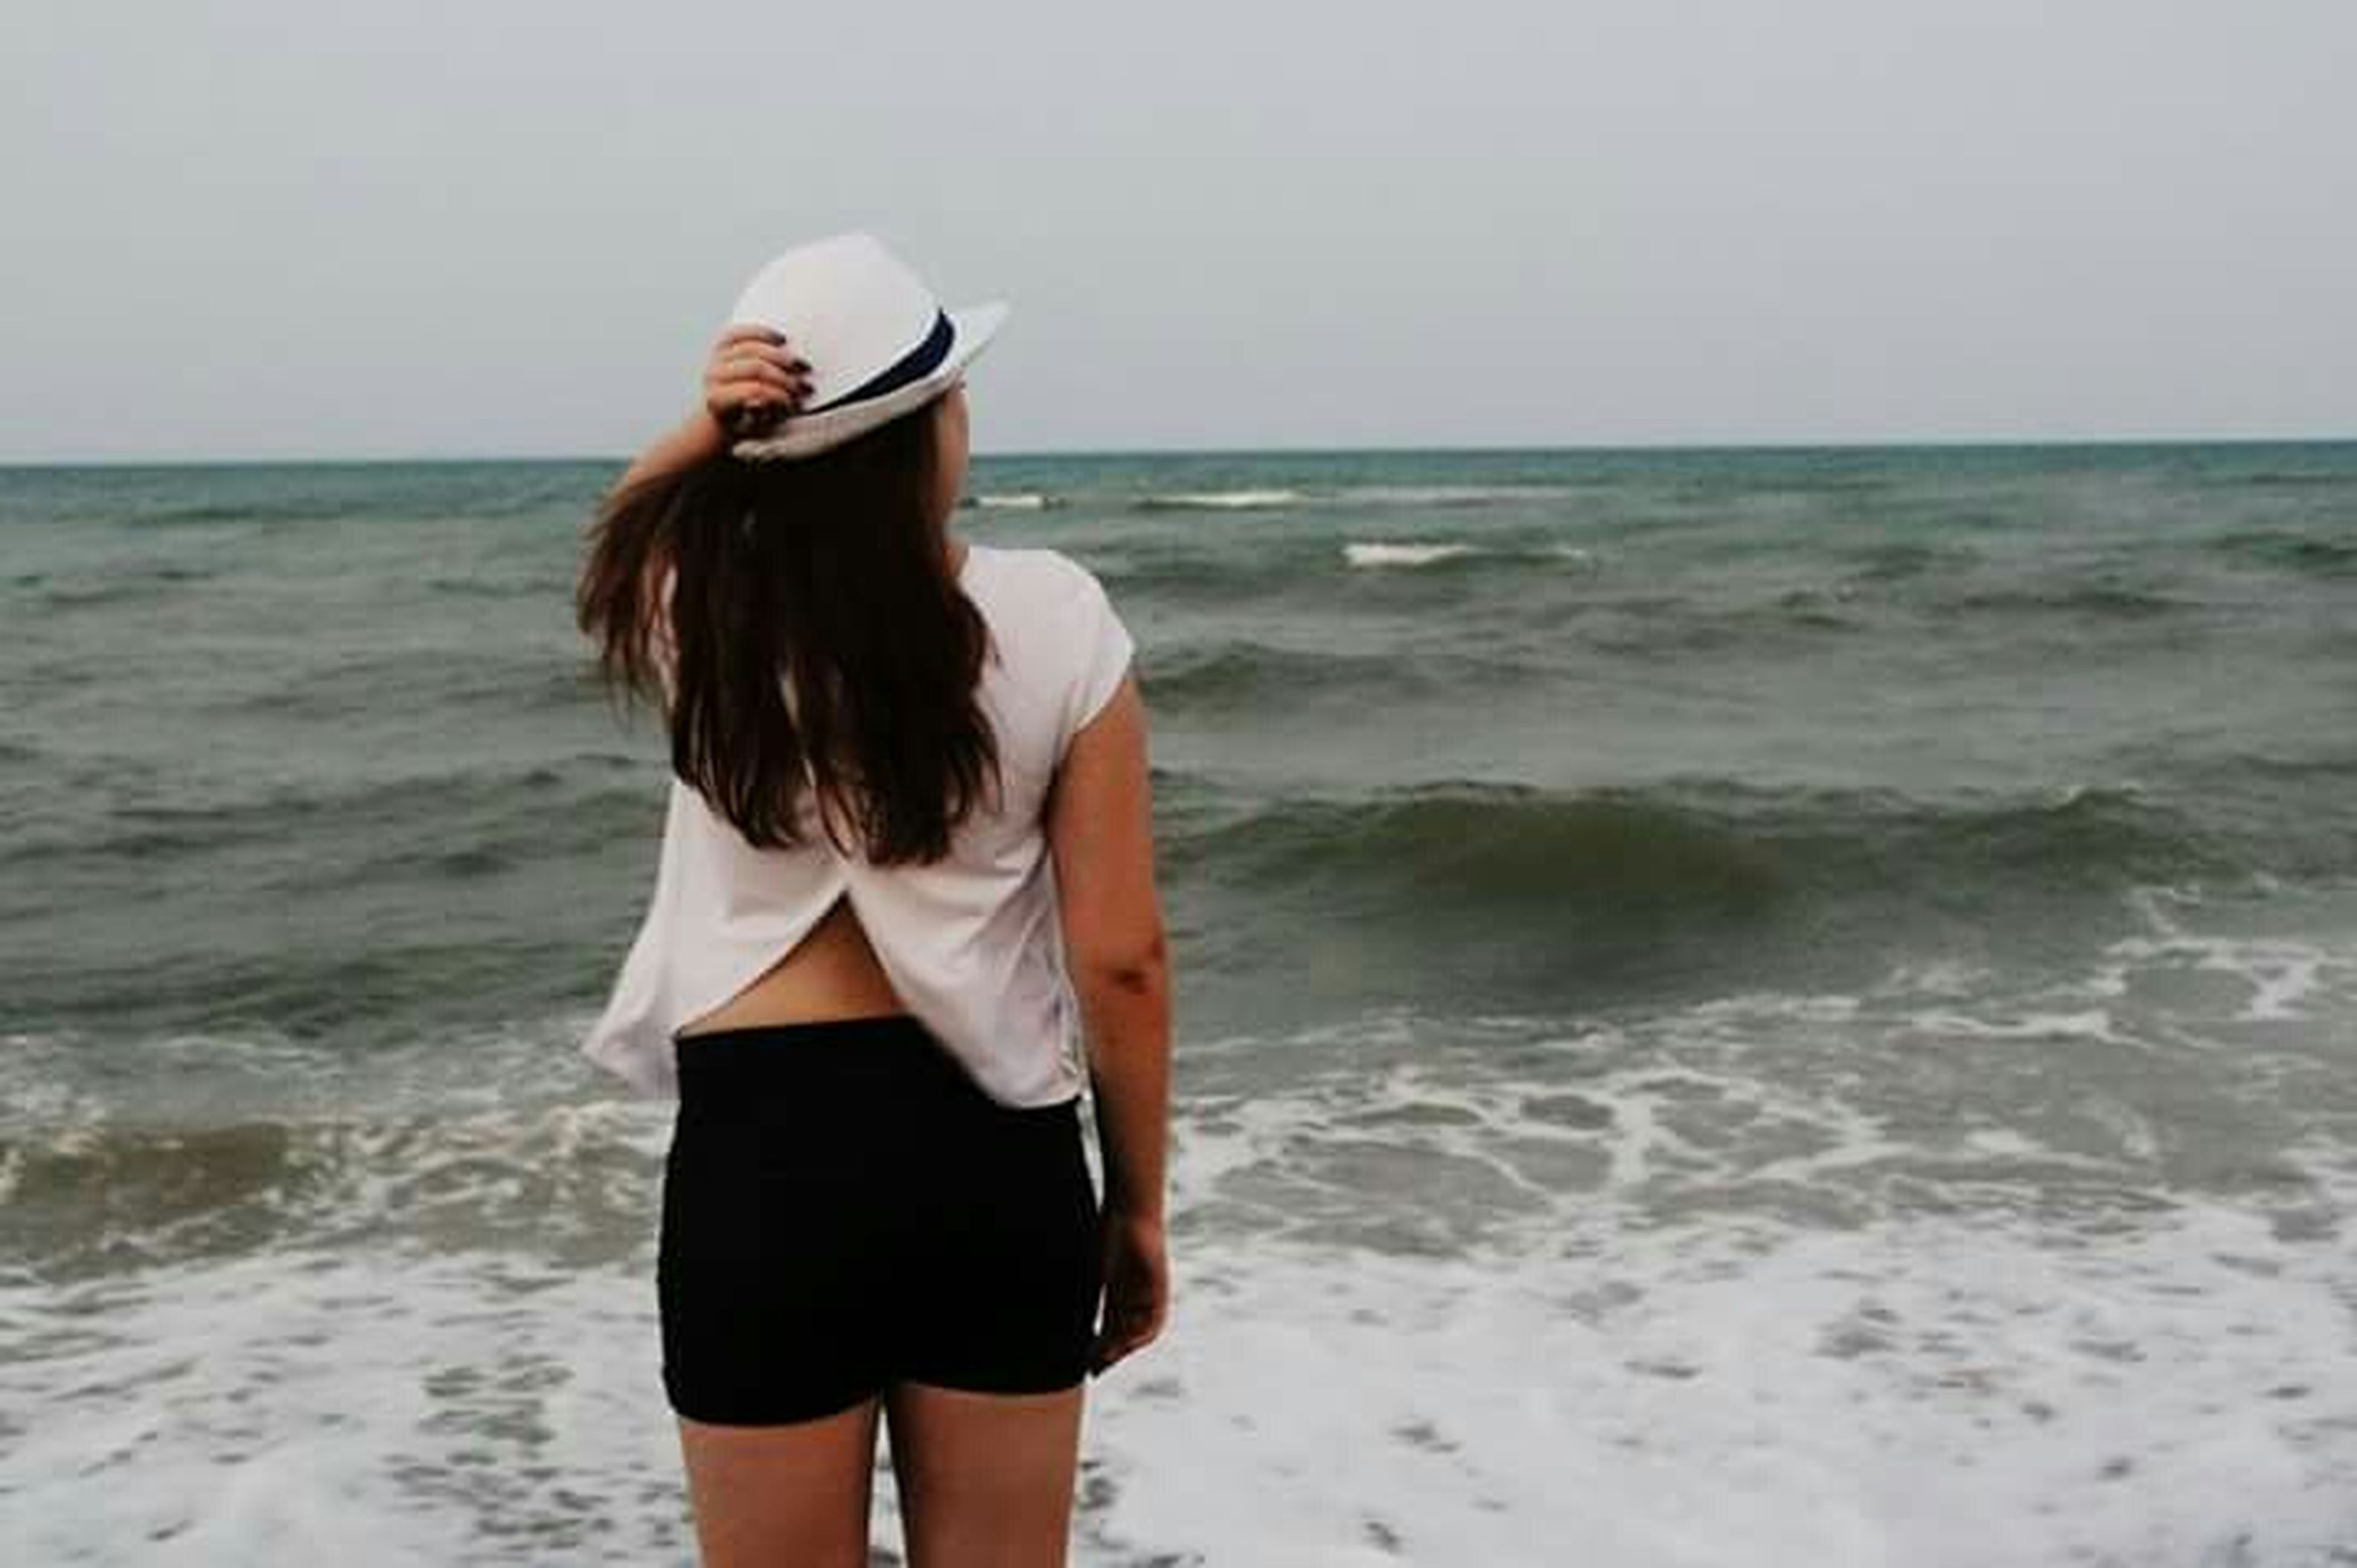 sea, water, horizon over water, beach, young adult, standing, lifestyles, young women, long hair, leisure activity, shore, three quarter length, rear view, person, casual clothing, vacations